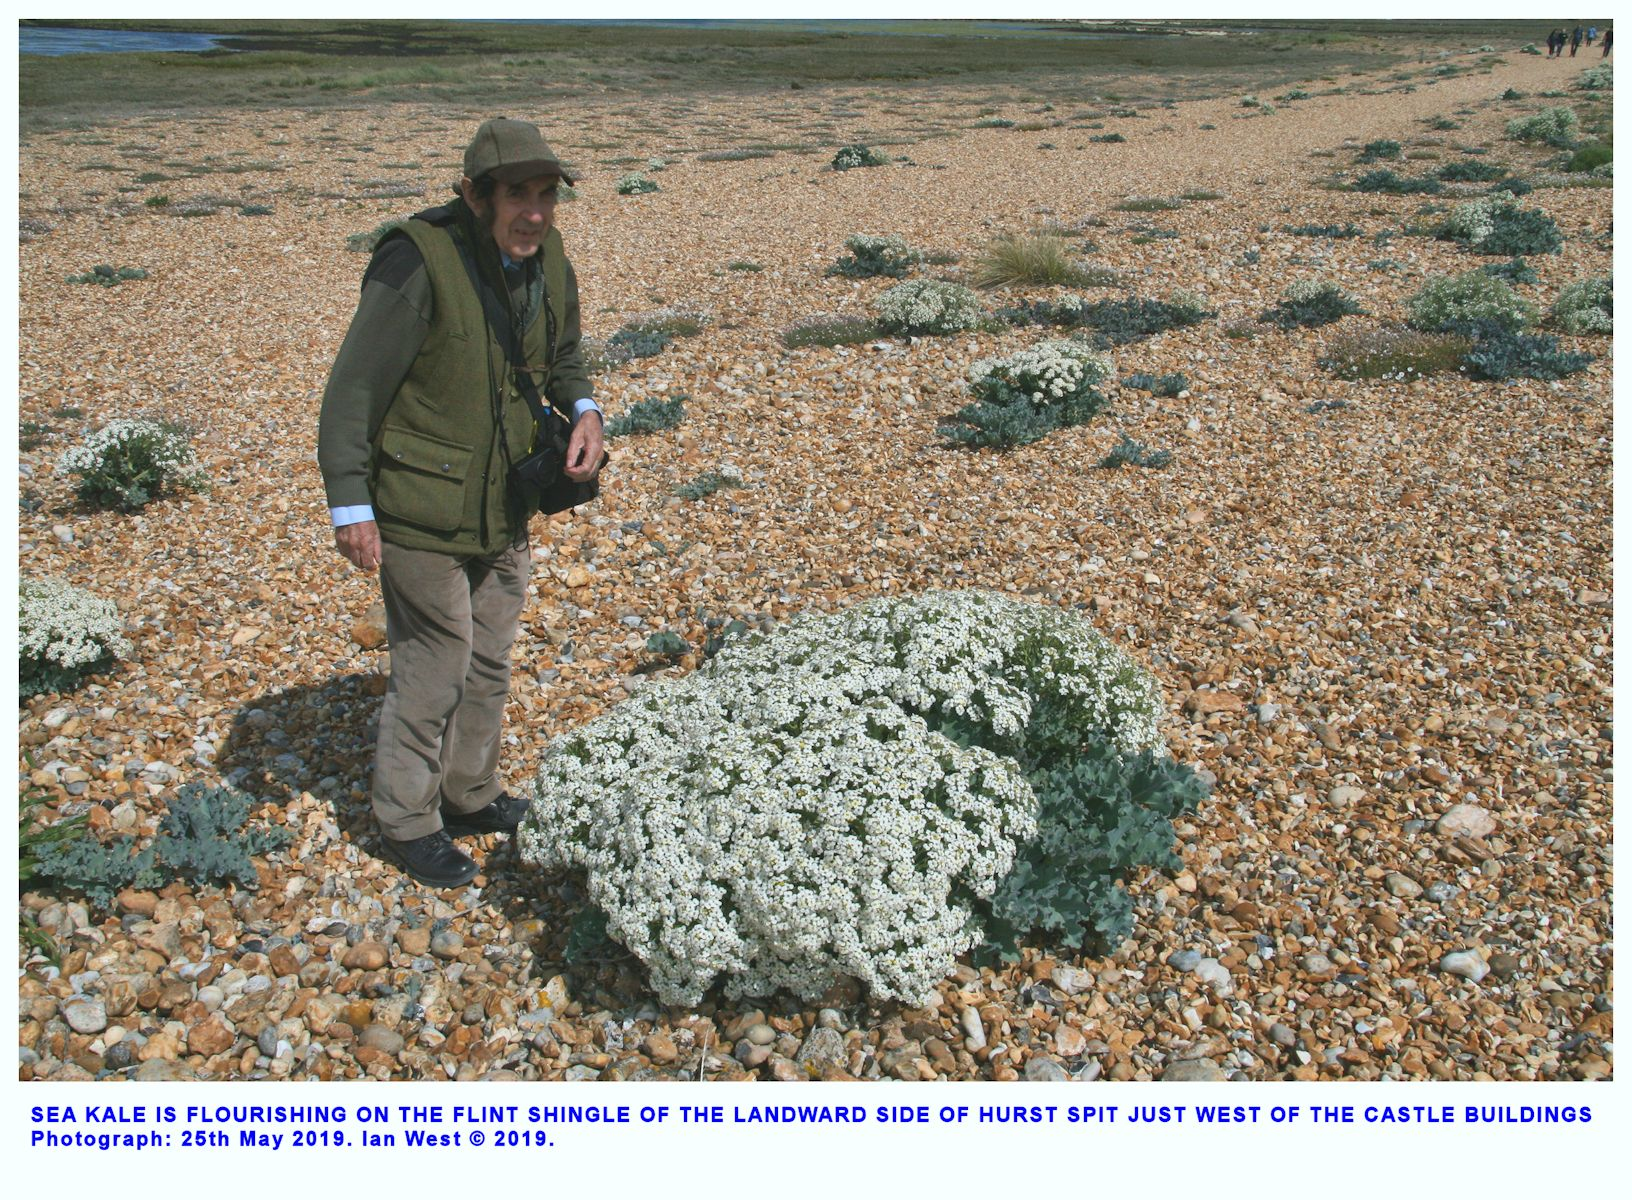 Sea kale continues to flourish on the landward side of Hurst Spit, west of the castle buildings, pm., 25th May 2019